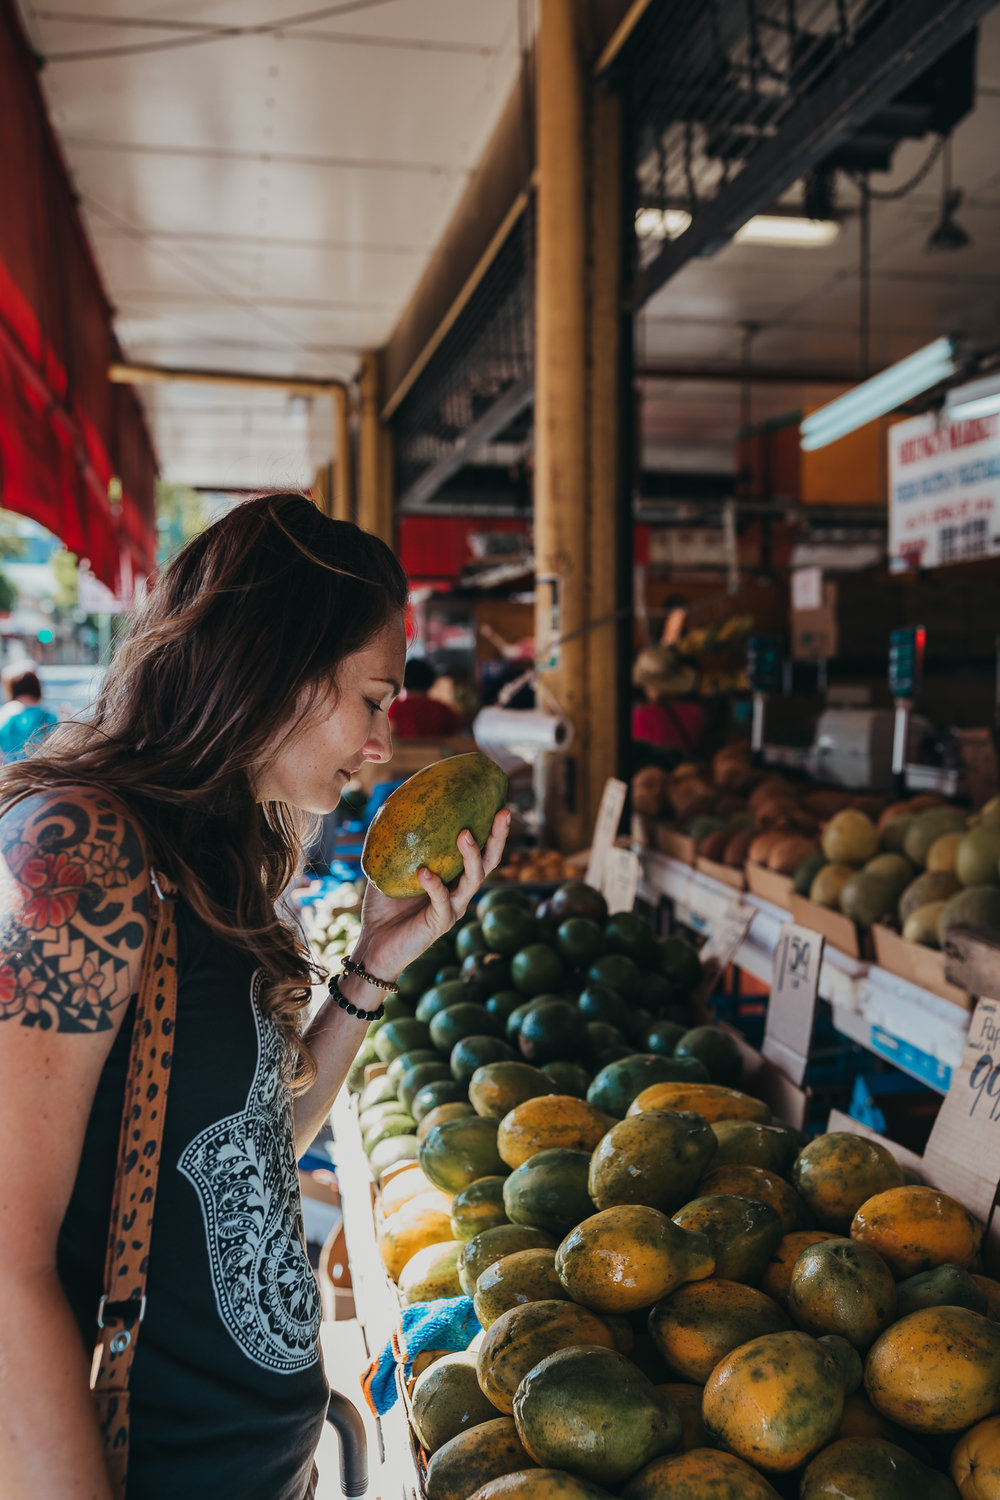 970A8192Chinatown Lyfestyle Blogger food phoography - Ketino Photography - Oahu Family and Lyfestyle PhotographerjpgChinatown Lyfestyle Blogger food phoography - Ketino Photography - Oahu Family and Lyfestyle Photographer .jpg